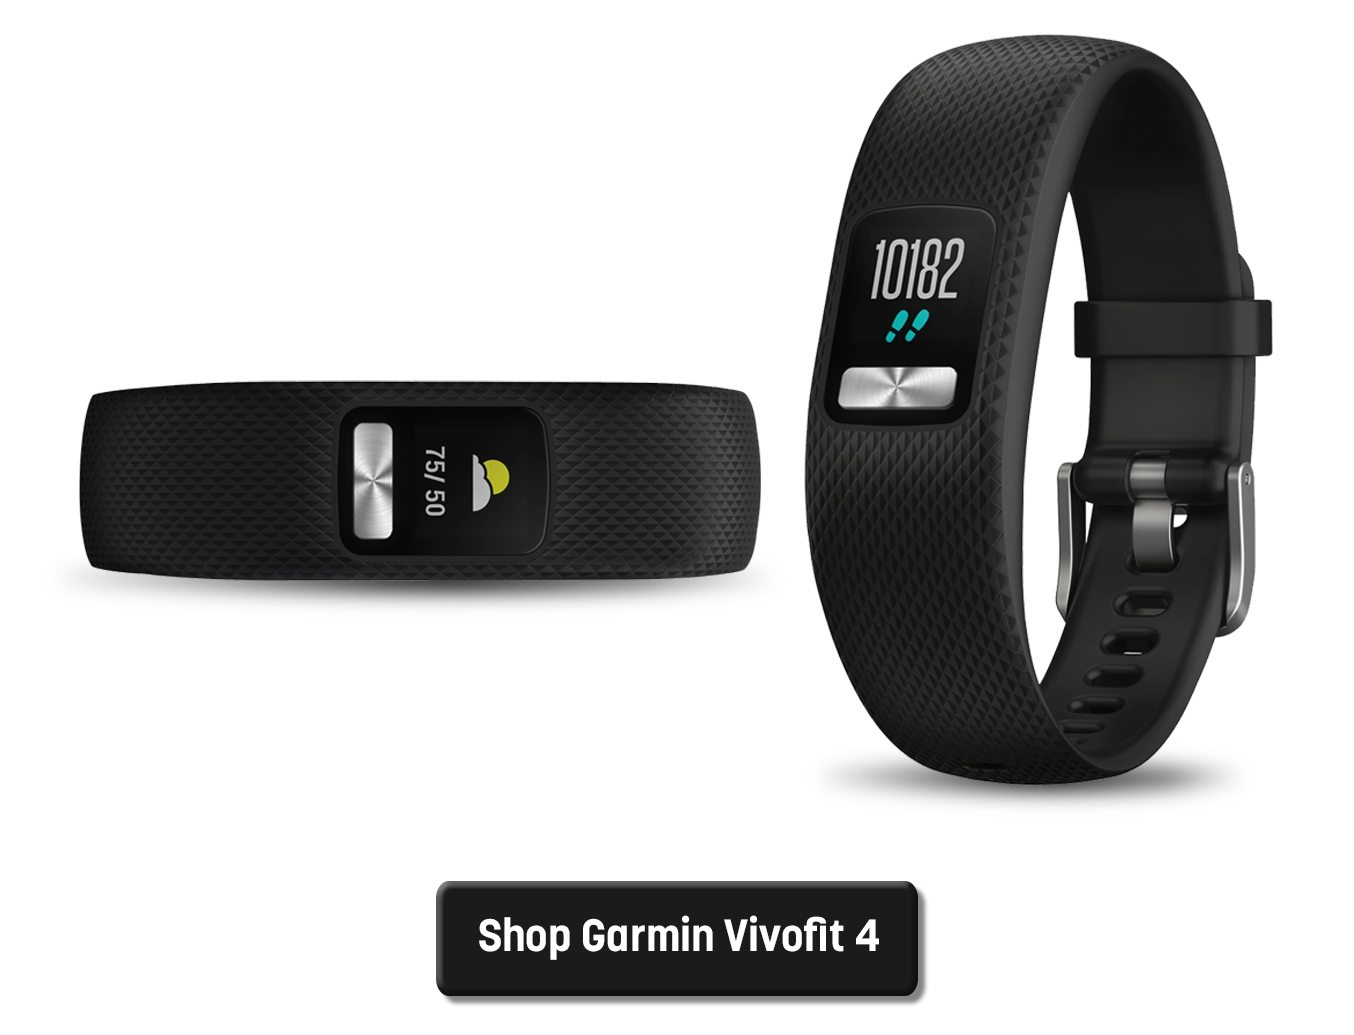 Shop Garmin vívofit 4 Activity Tracker